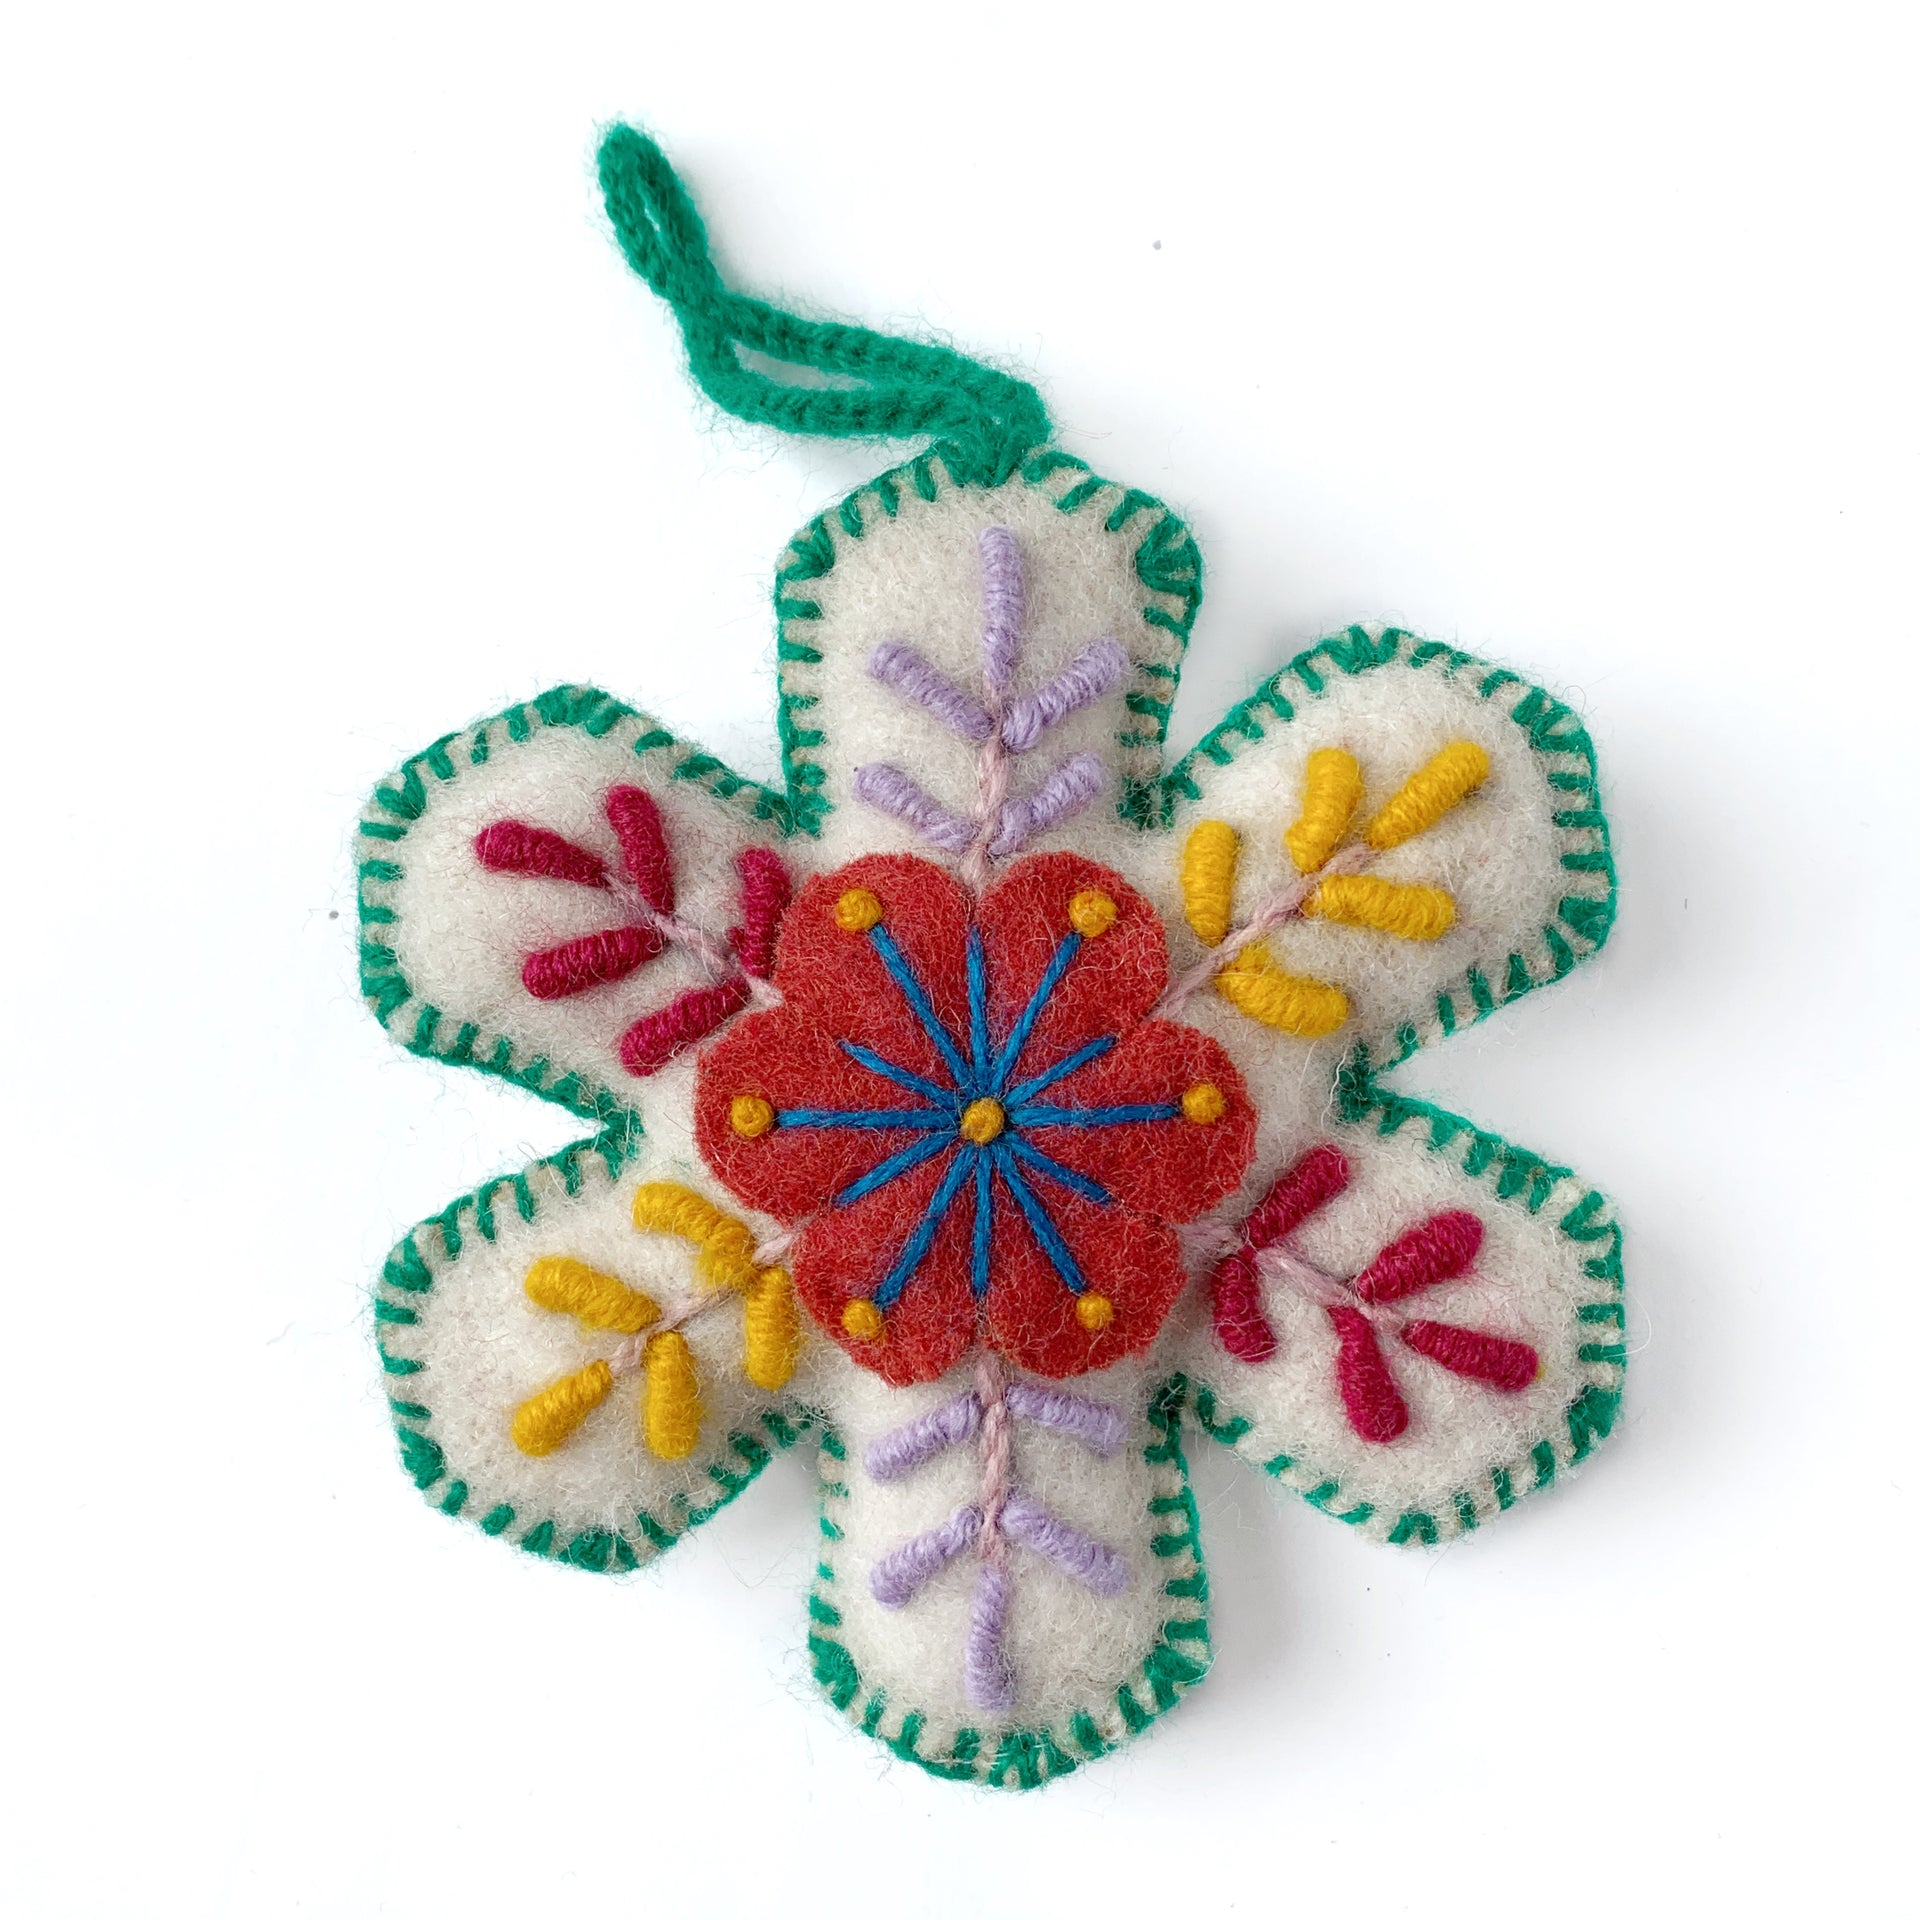 Snowflake, Embroidered Wool Ornament Rainbow Variety 6 Pack